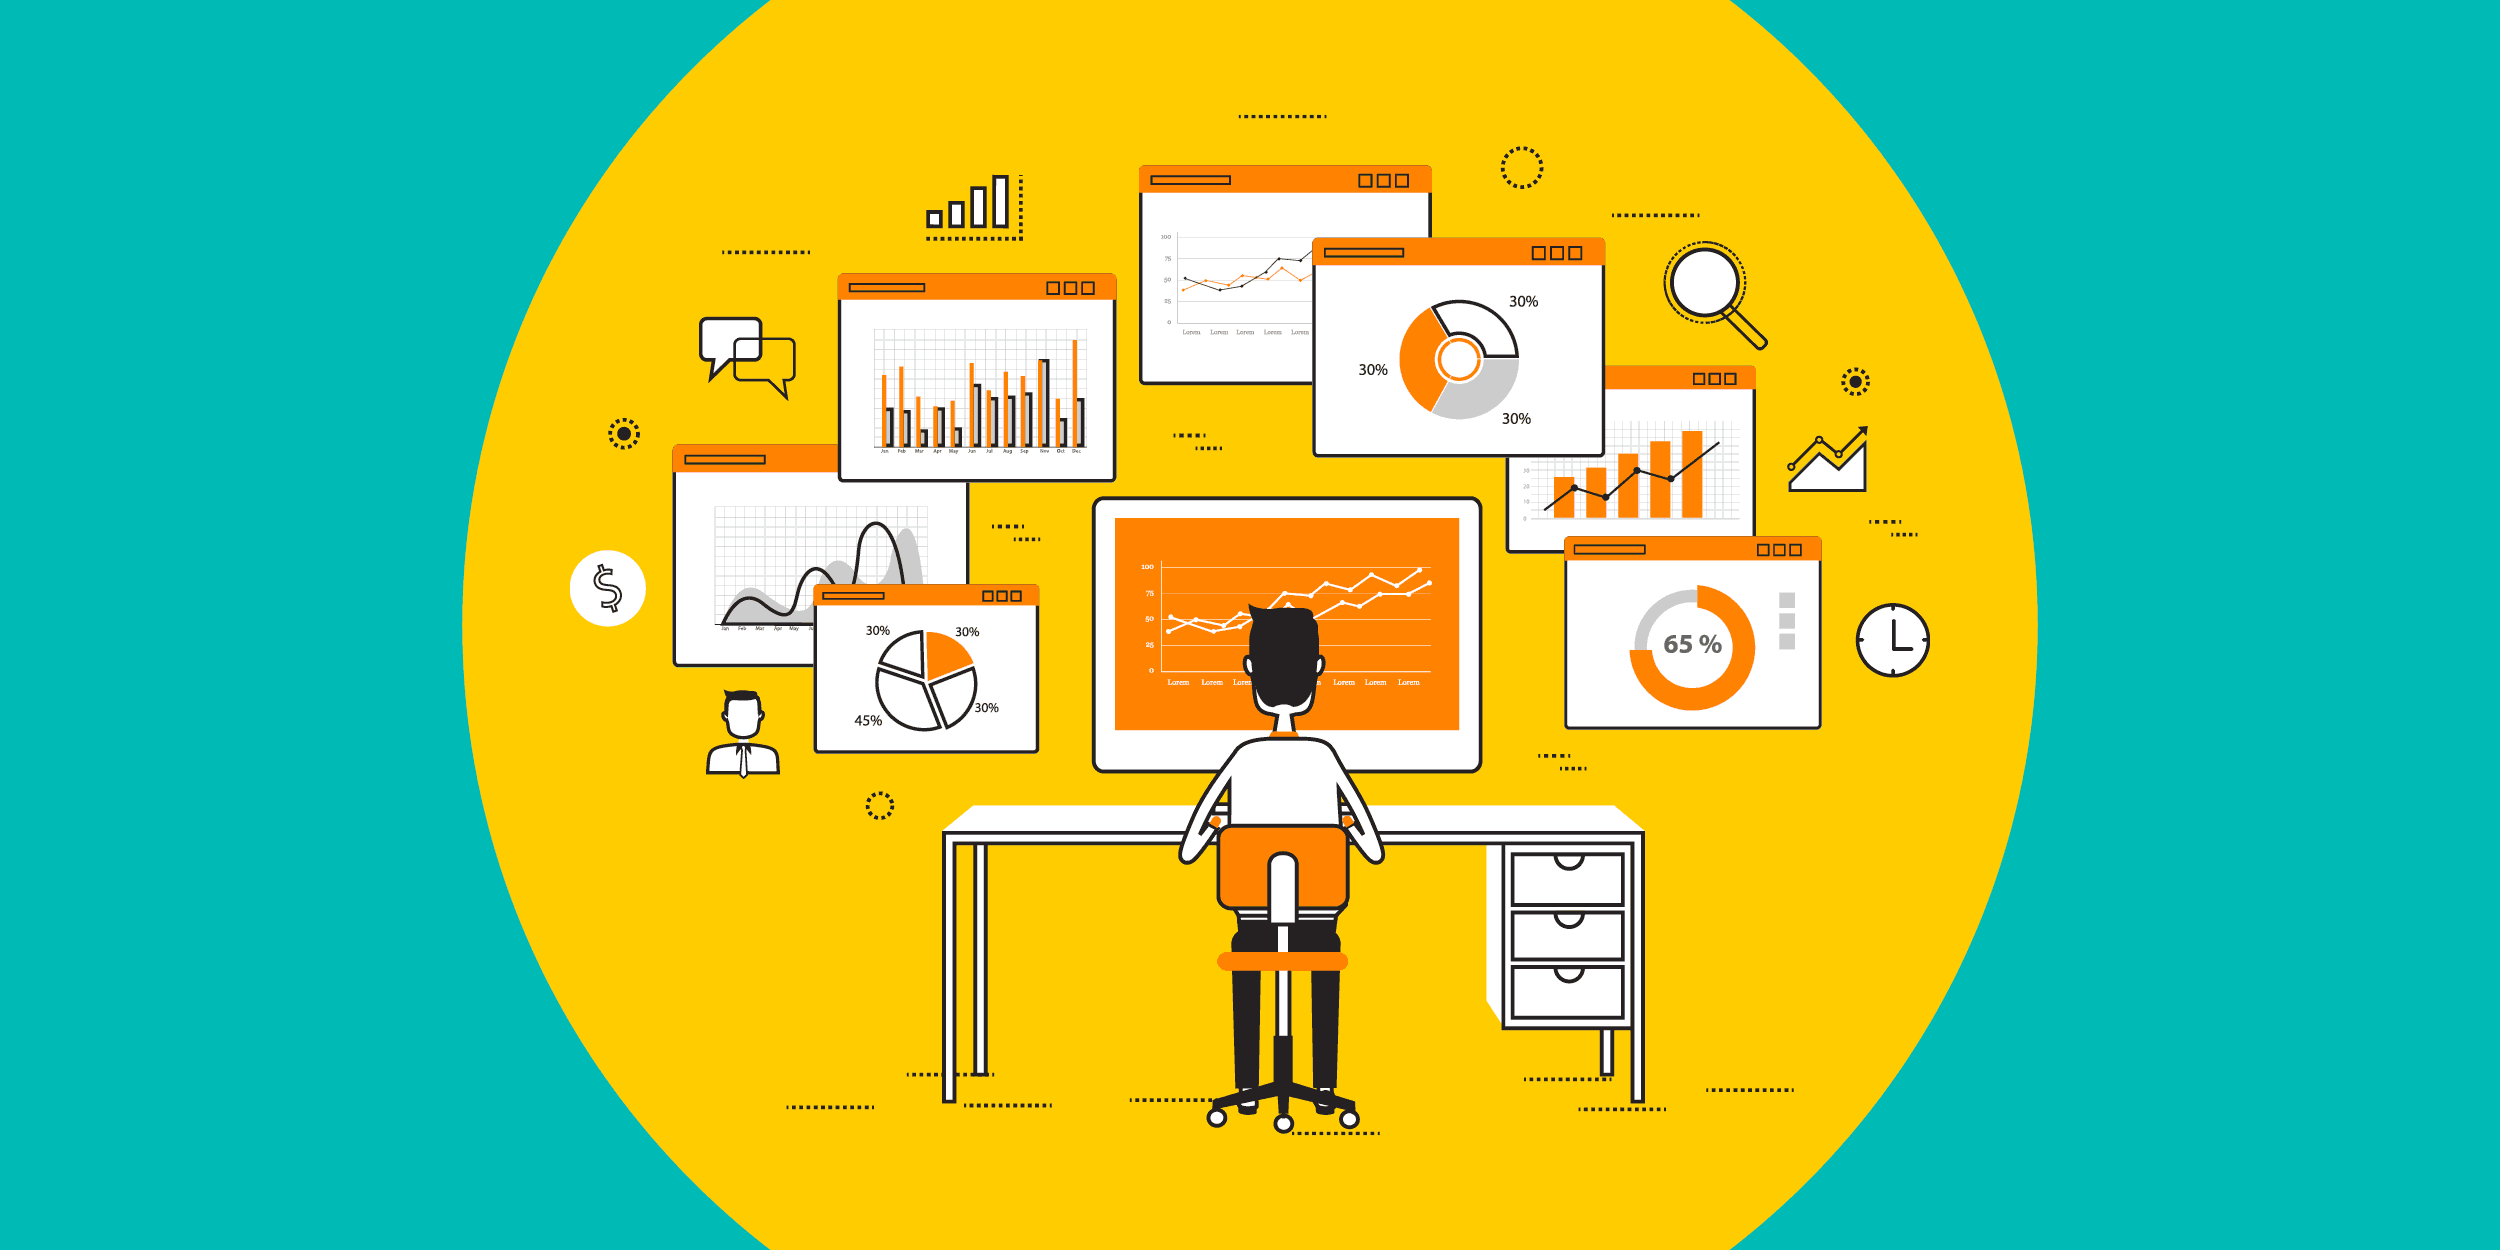 illustration of a nonprofit staffer looking at a computer screen with Google Analytics dashboards on it